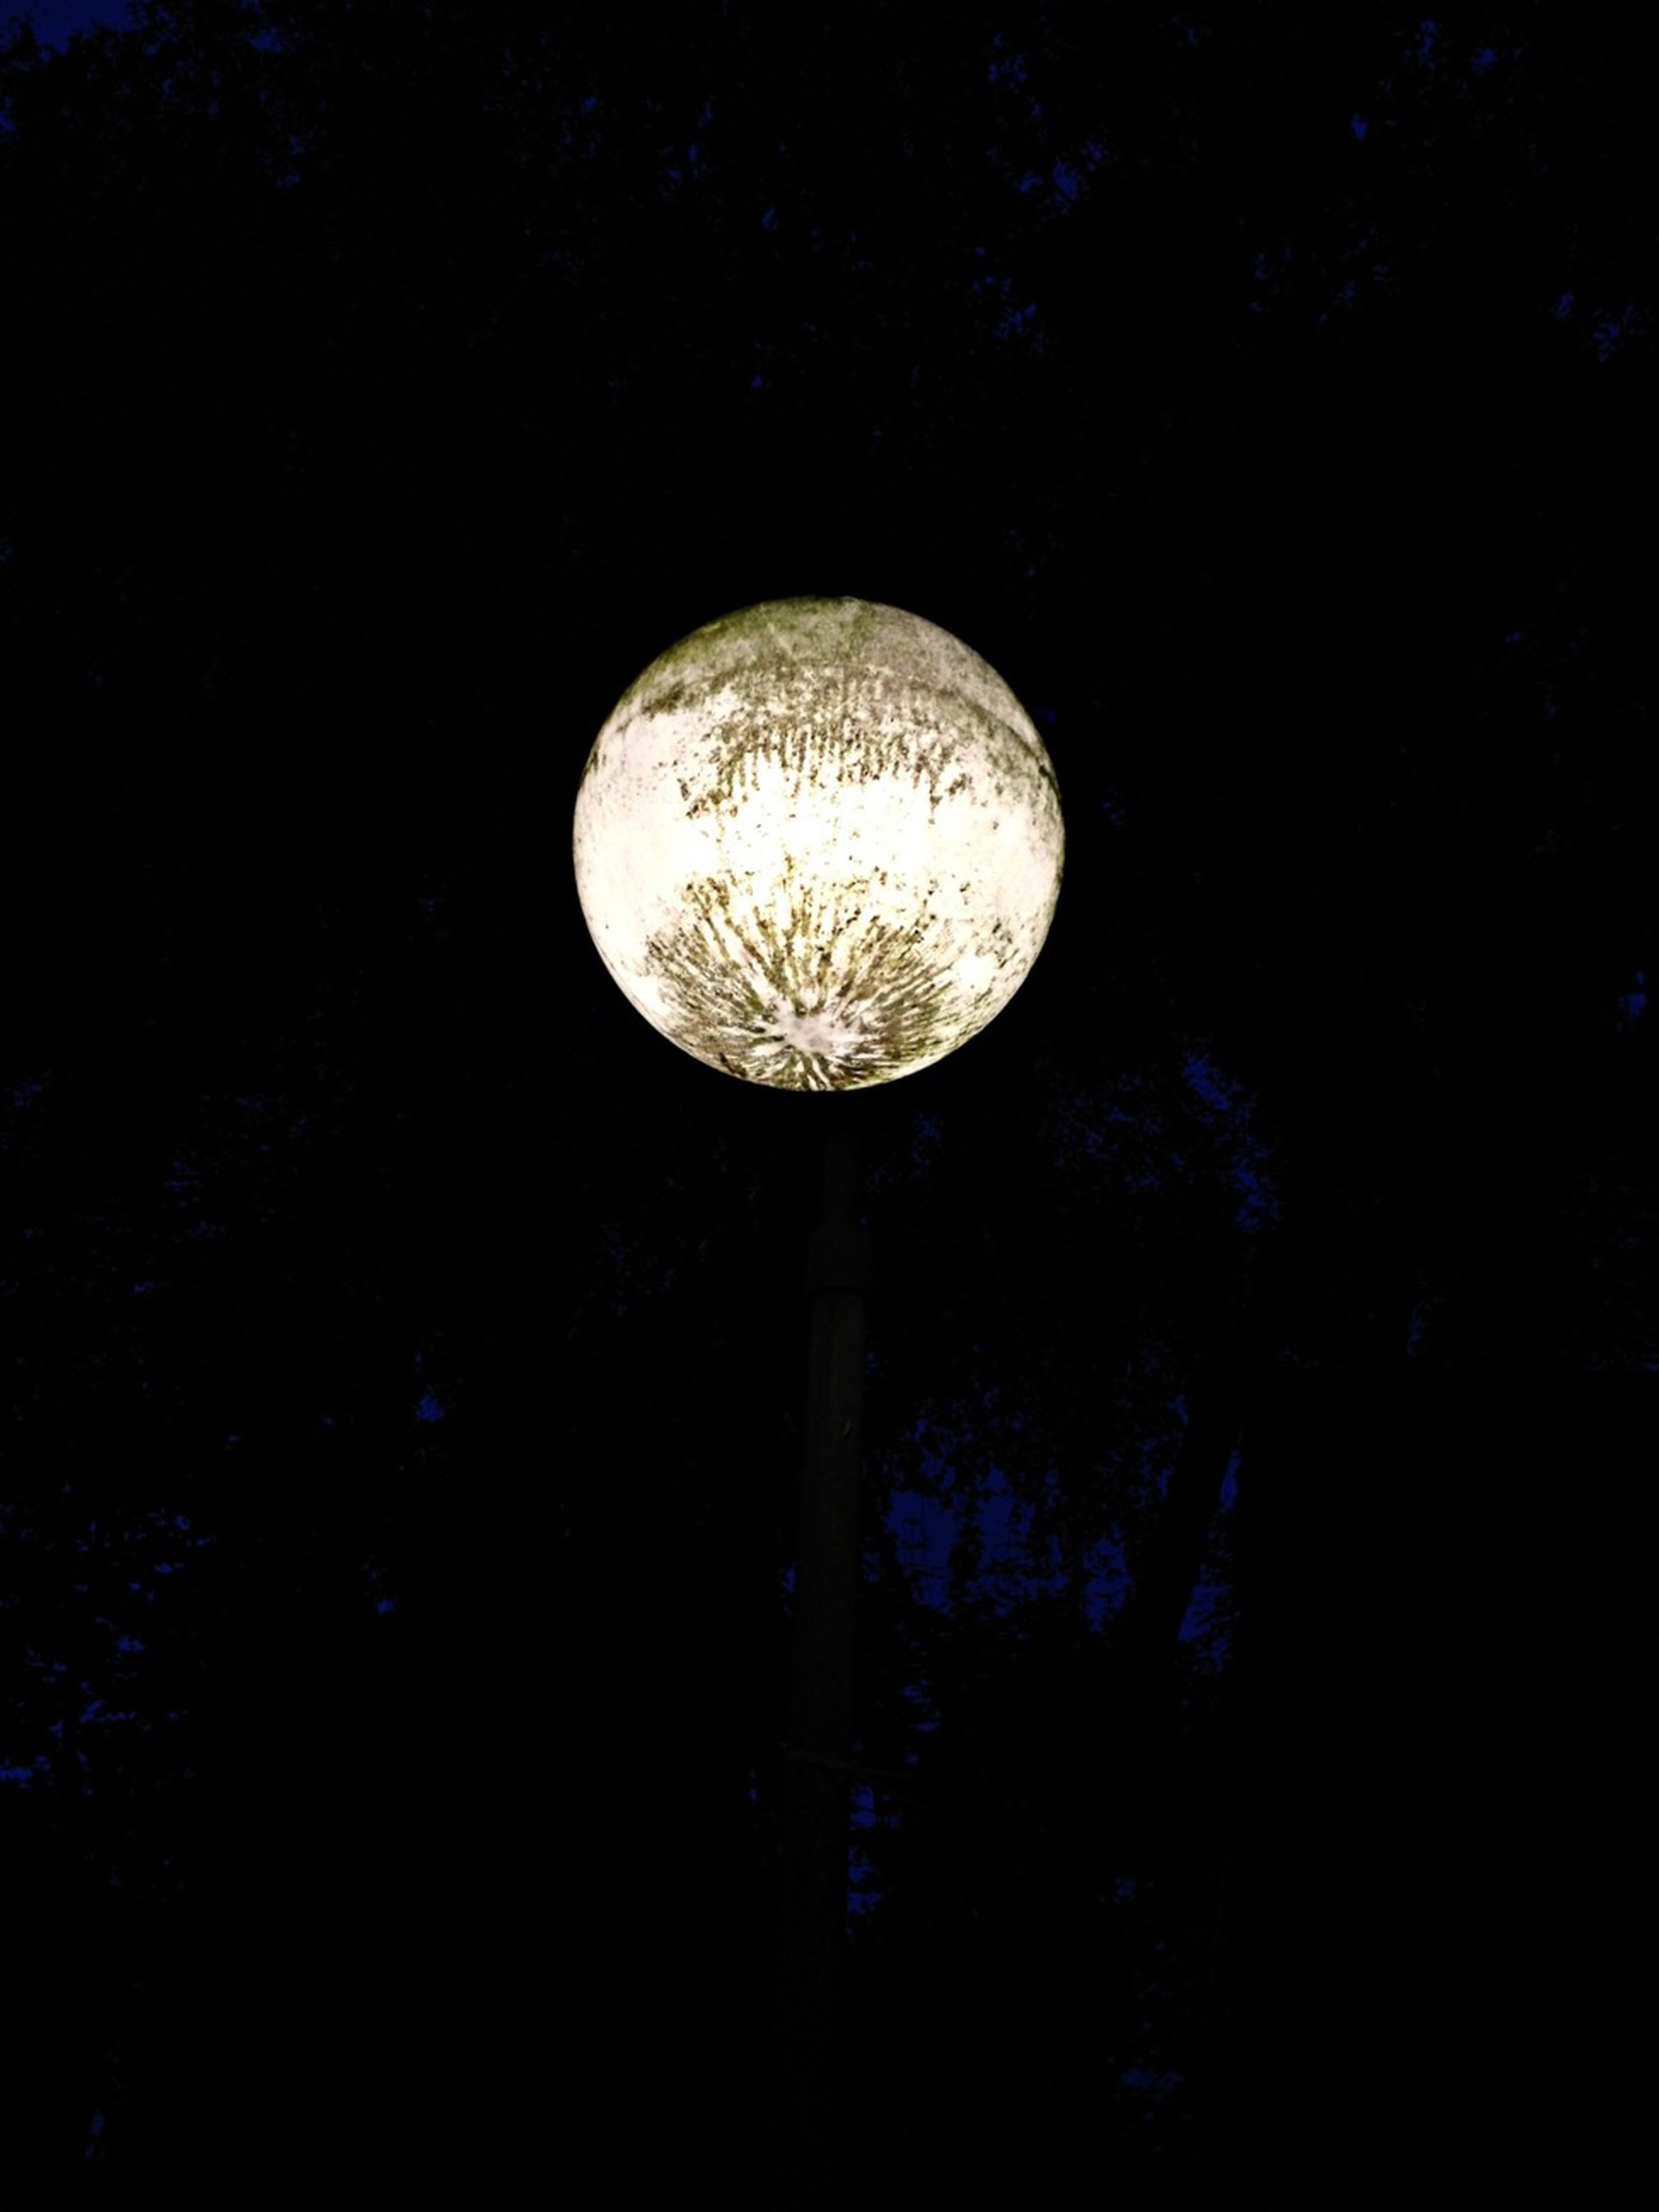 night, low angle view, moon, astronomy, illuminated, full moon, lighting equipment, dark, circle, electricity, sphere, copy space, planetary moon, no people, glowing, sky, electric light, street light, clear sky, light bulb